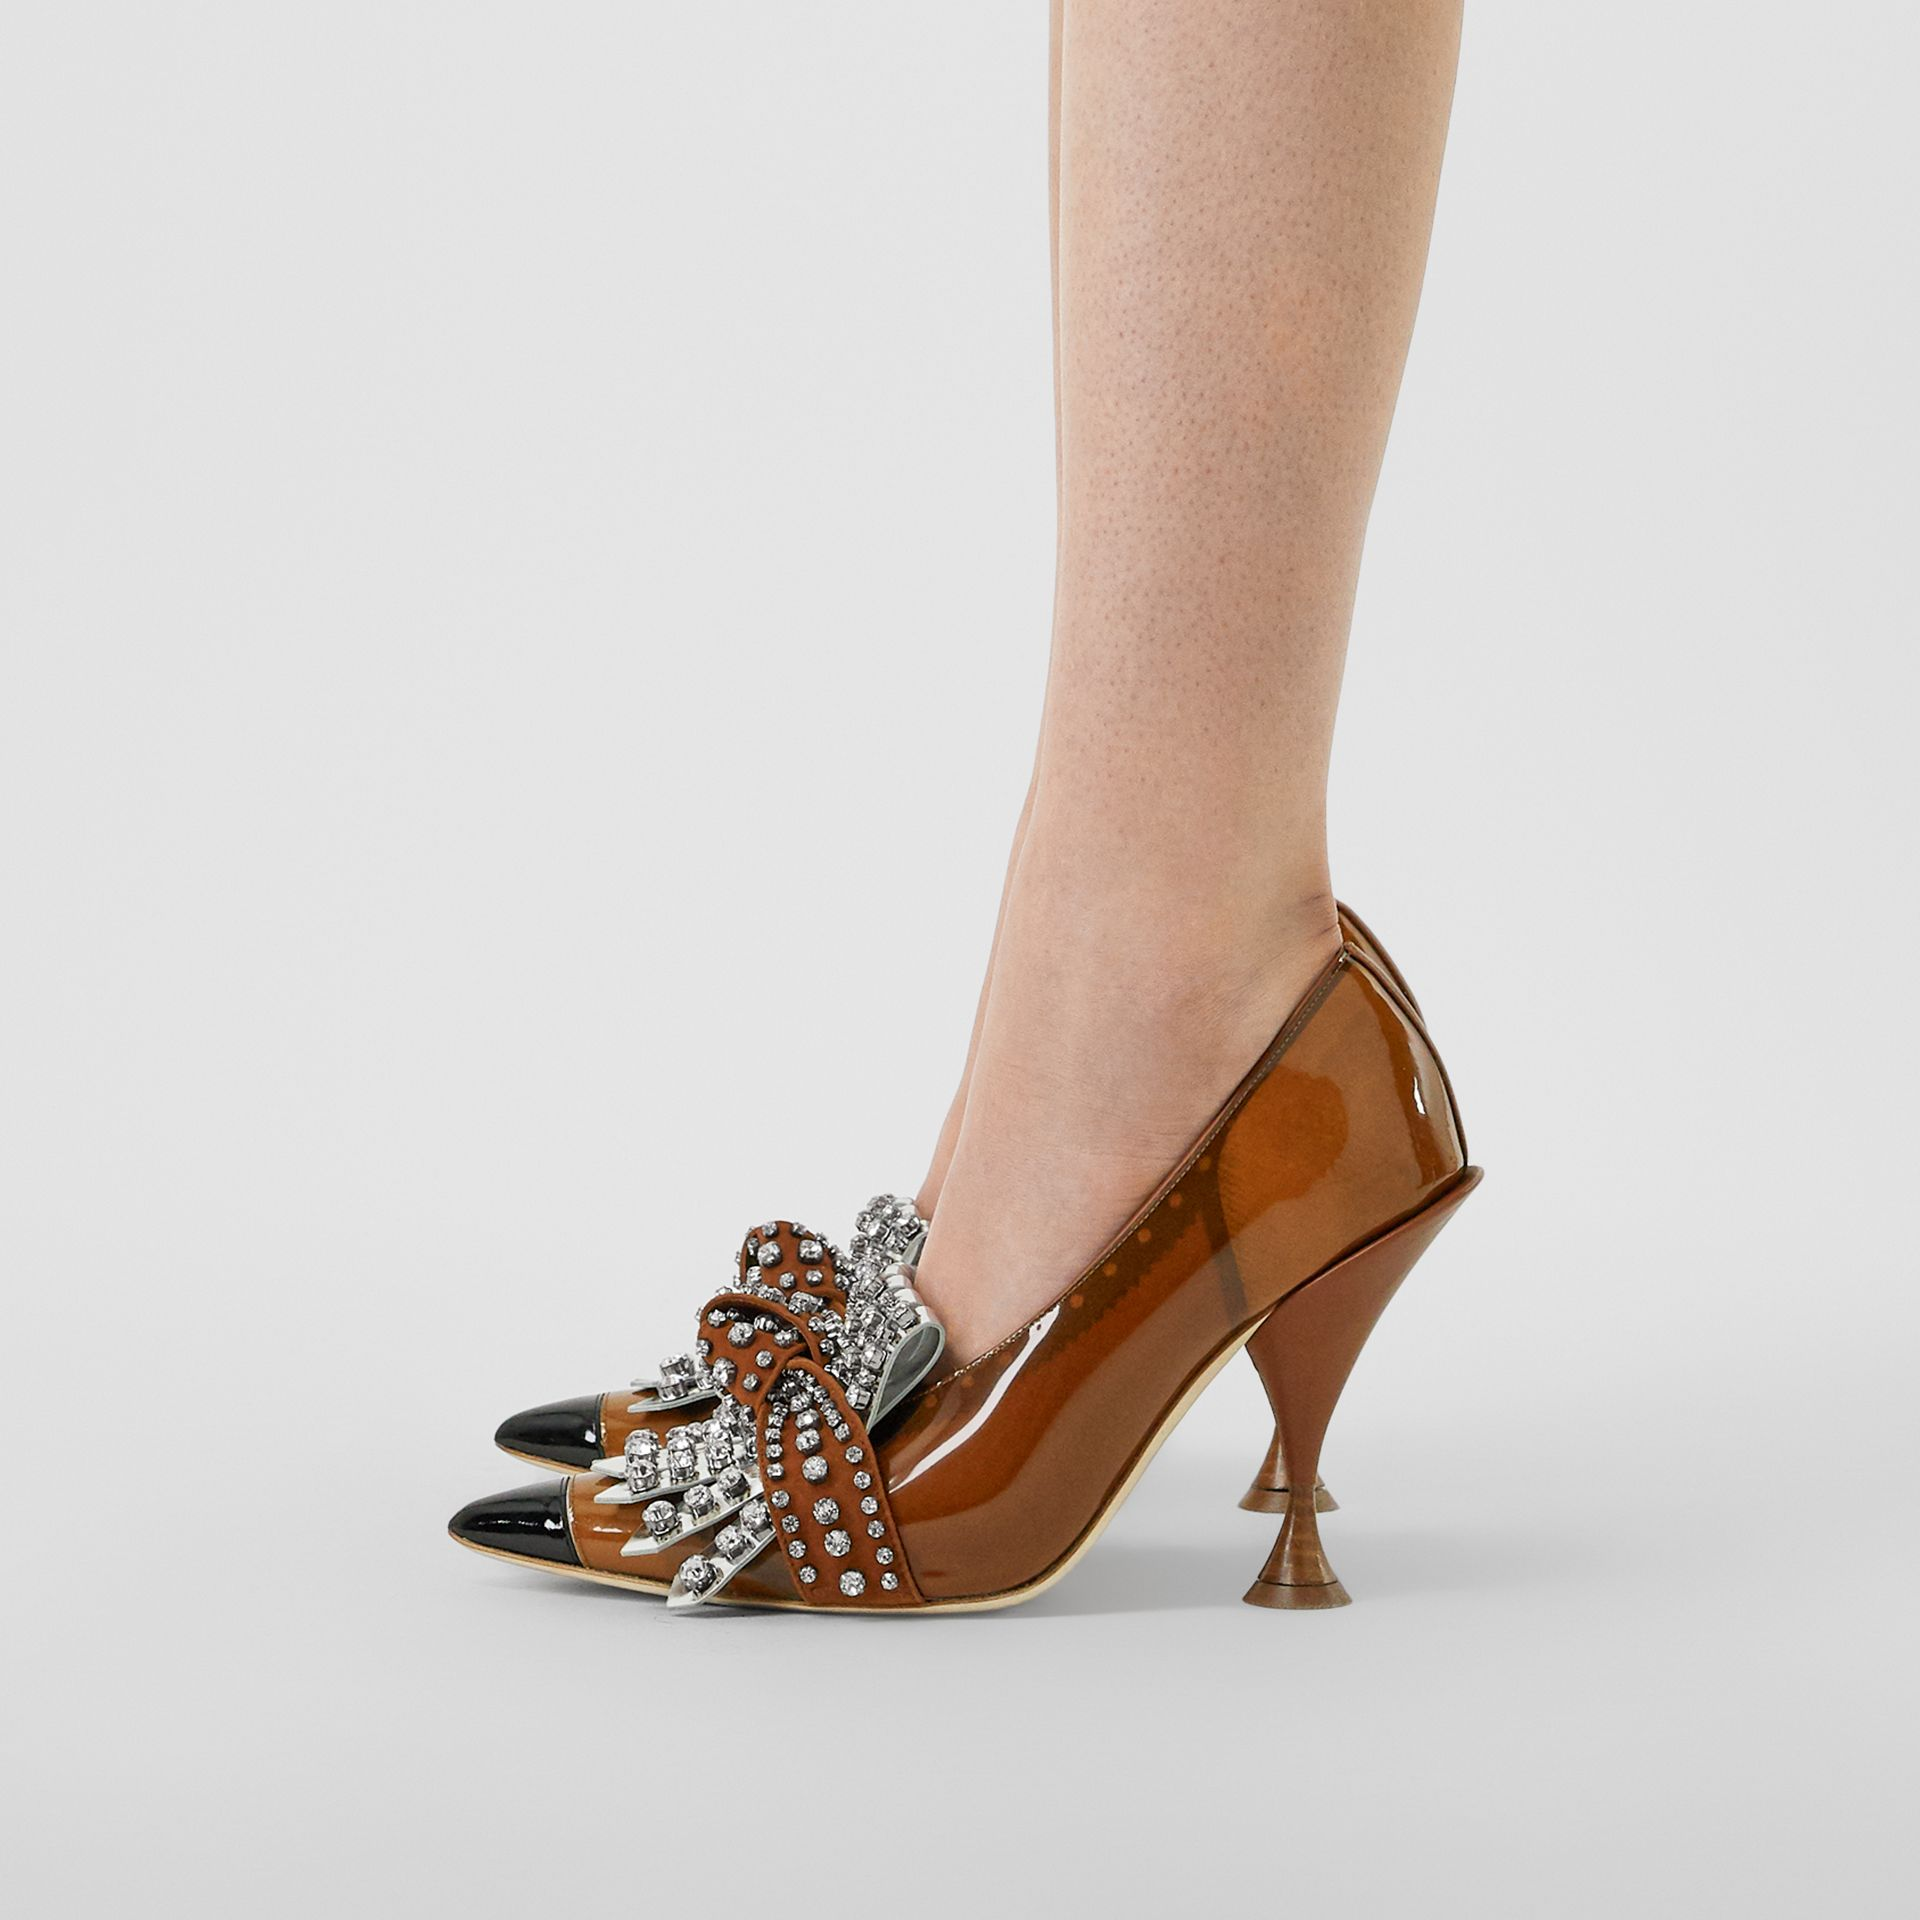 Crystal Kiltie Fringe Vinyl and Leather Point-toe Pumps in Malt Brown/black - Women | Burberry - gallery image 2